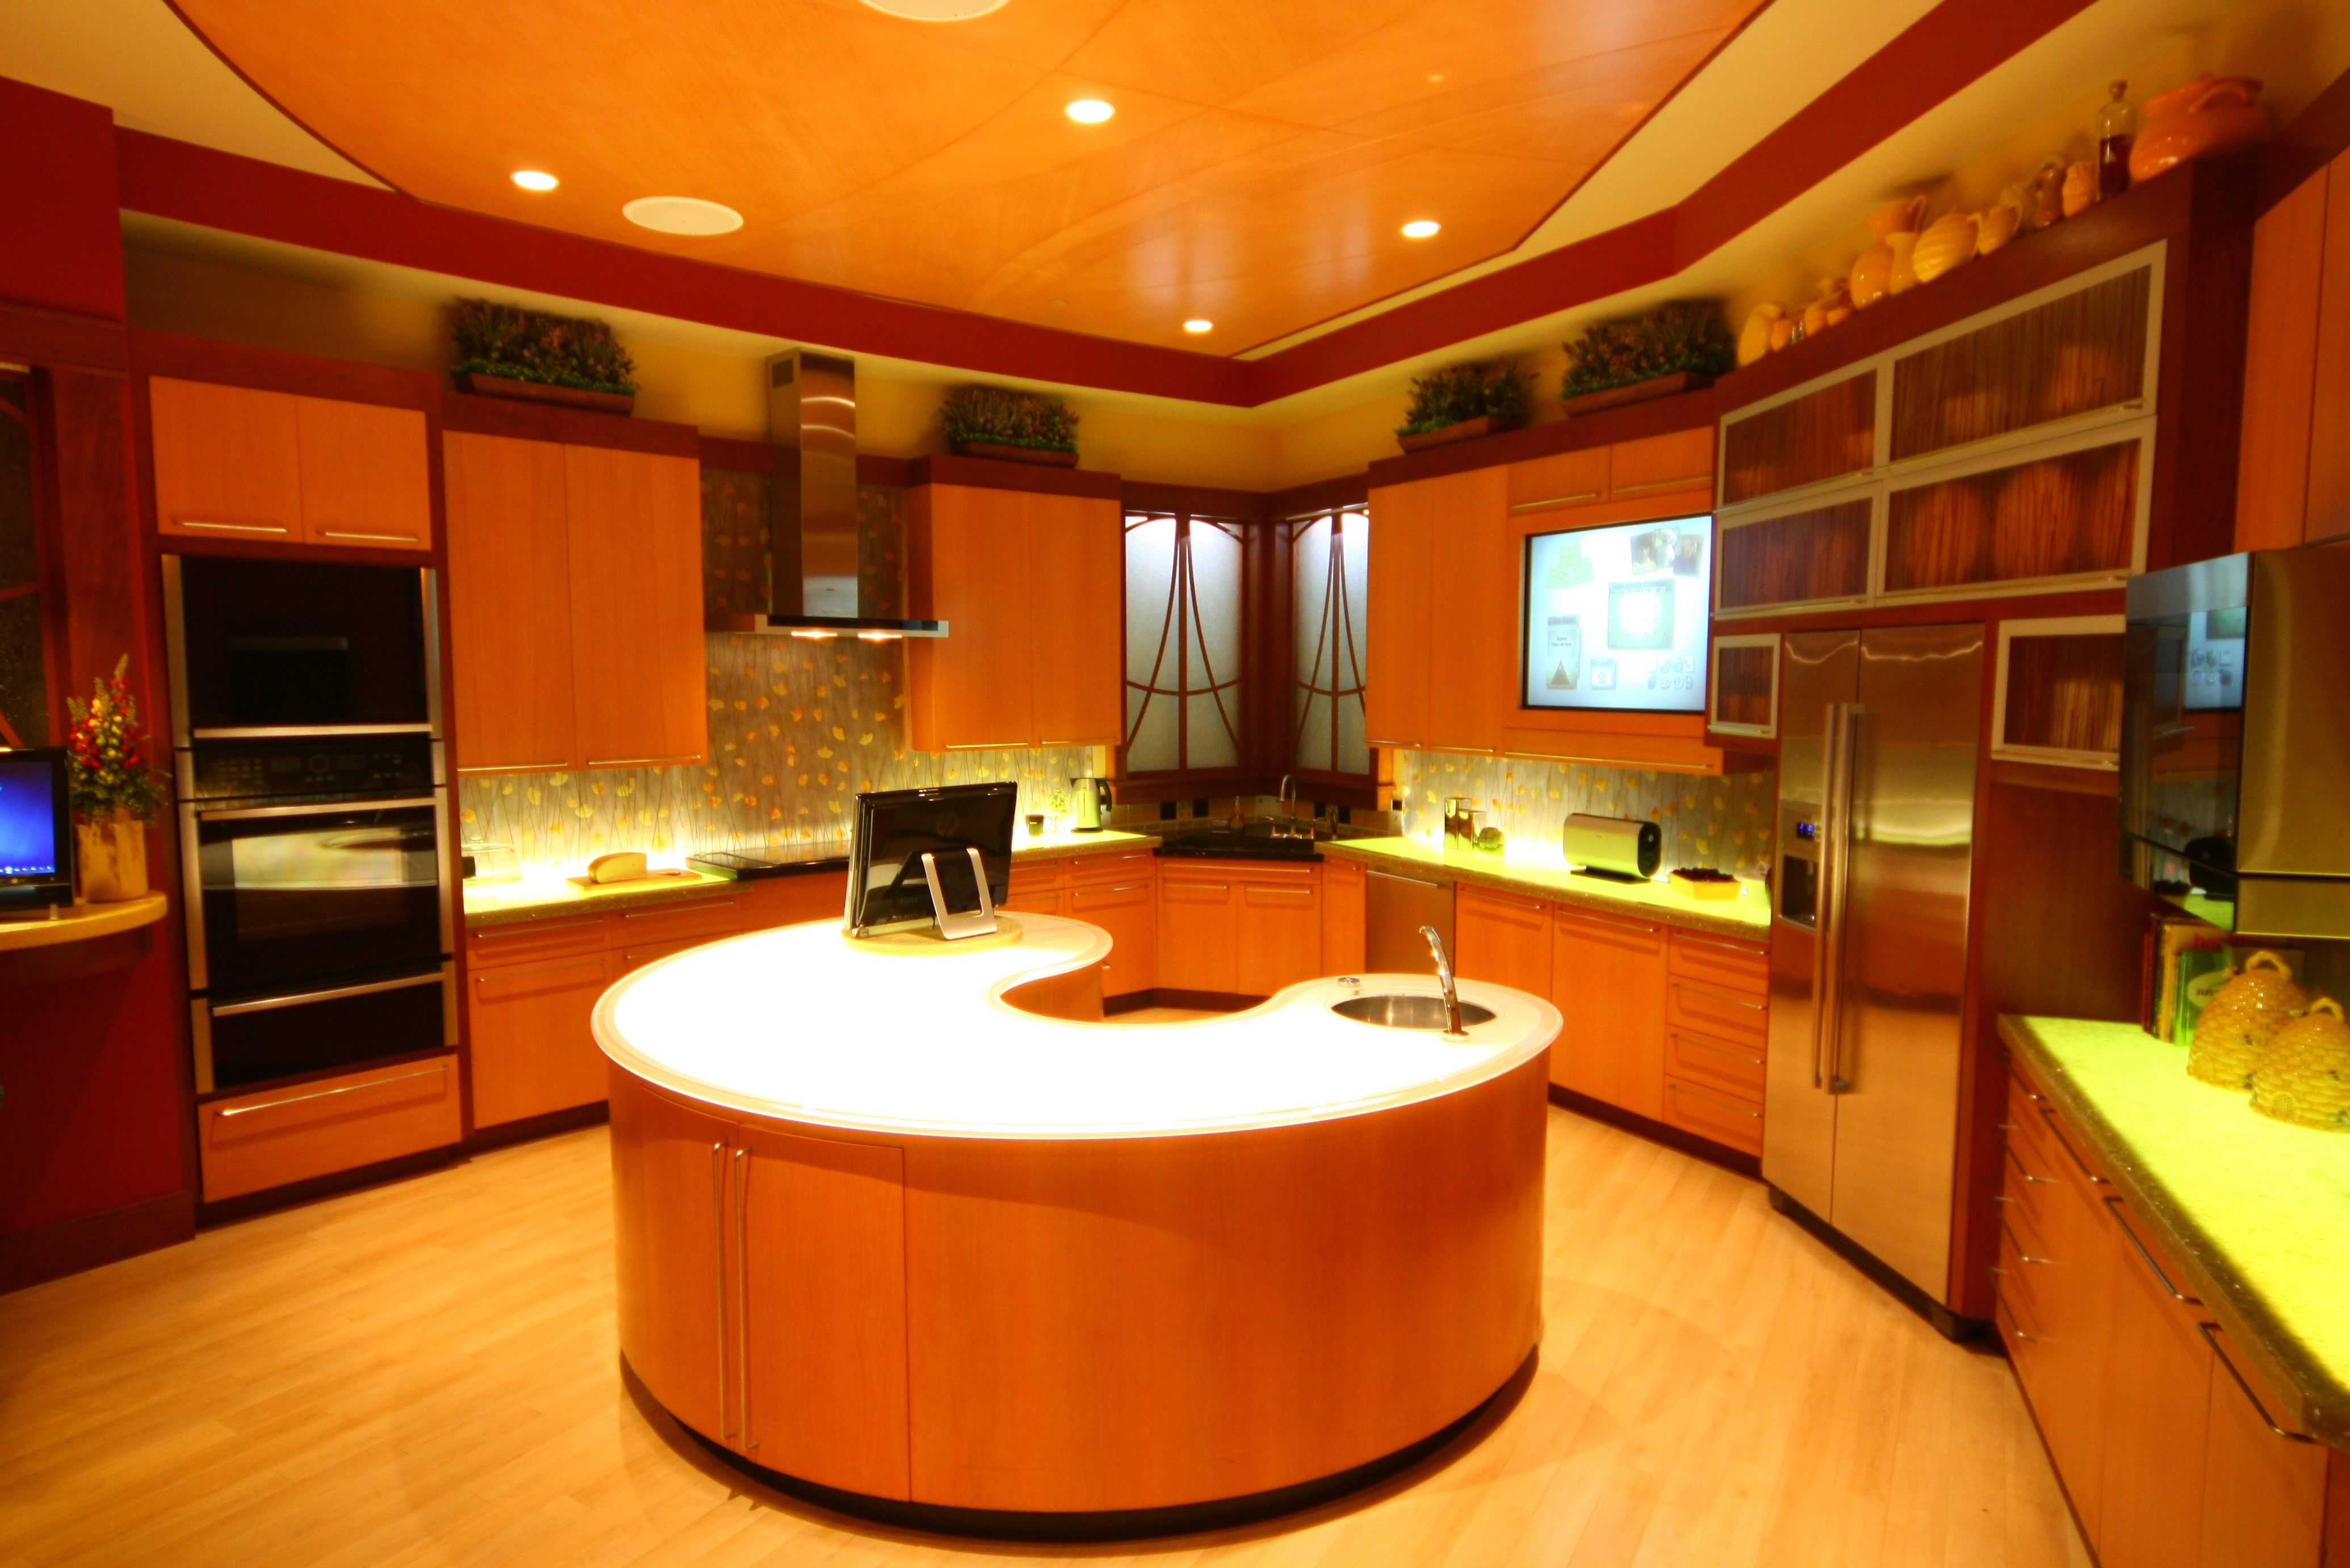 Orange Kitchen Filedlp Innoventions Kitchenjpg Wikimedia Commons